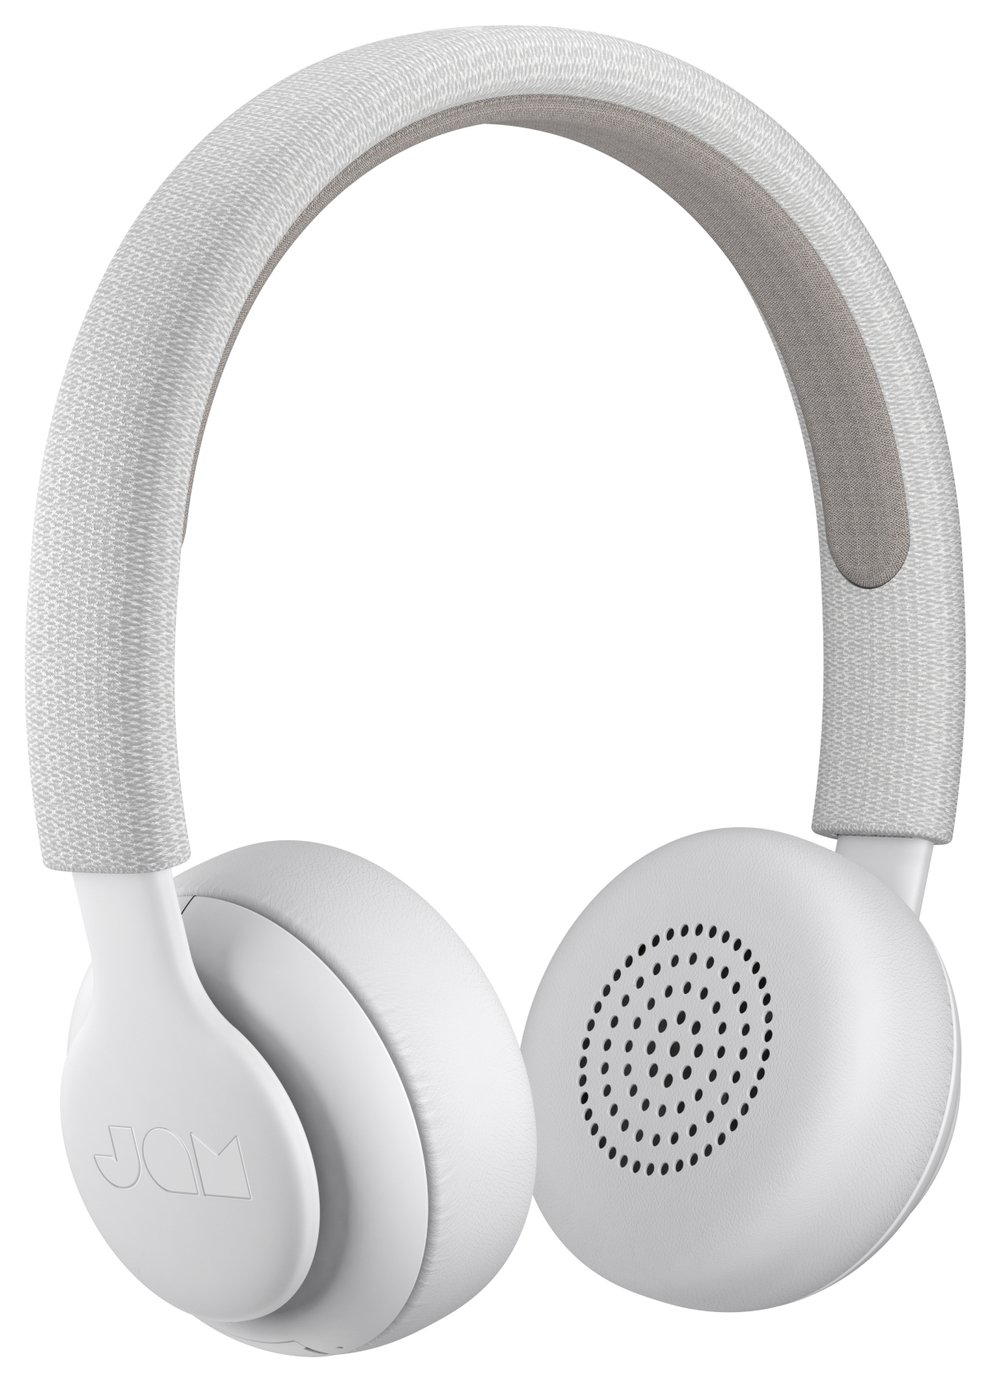 Jam Been There In-Ear Wireless Headphones - Grey